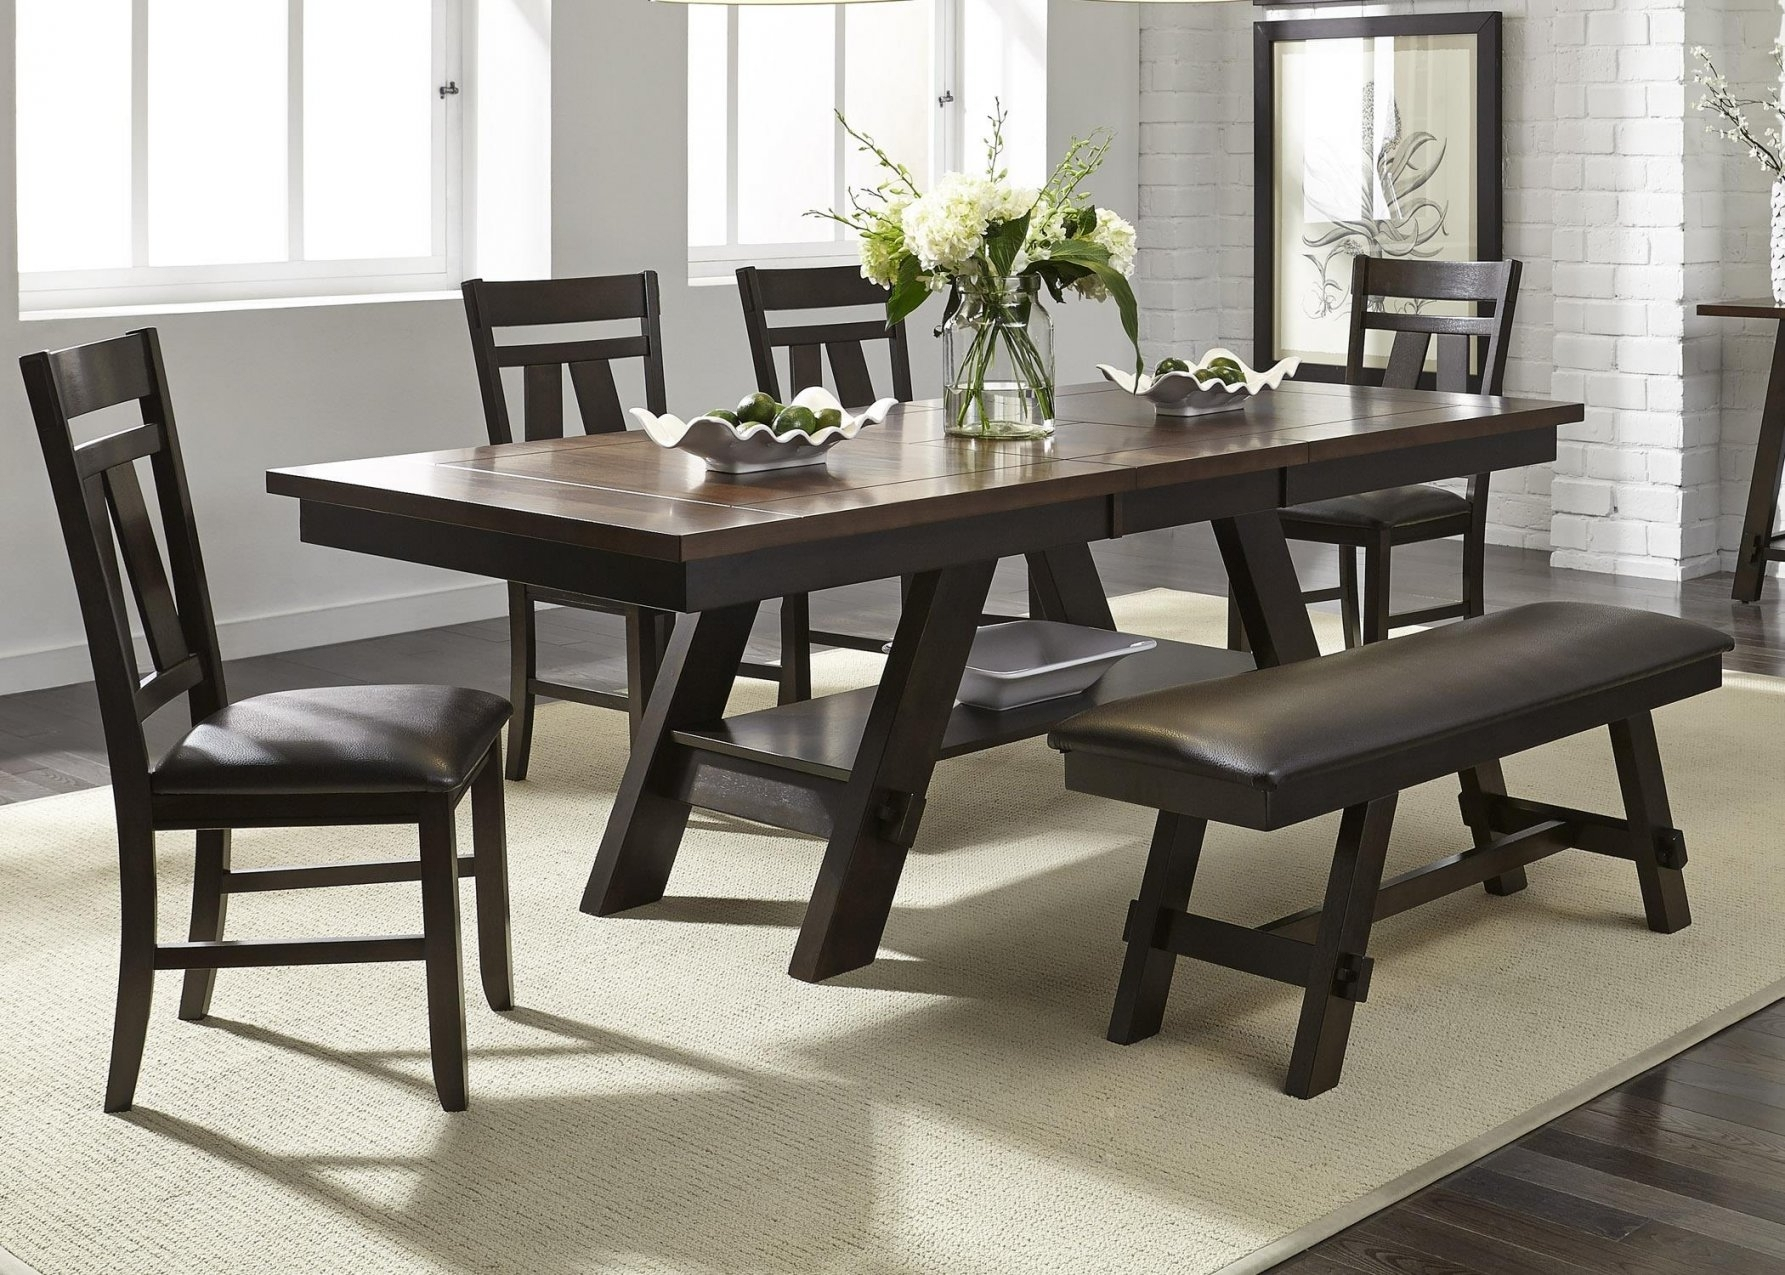 6 Piece Dining Table Set – Castrophotos In Newest Partridge 7 Piece Dining Sets (View 11 of 20)